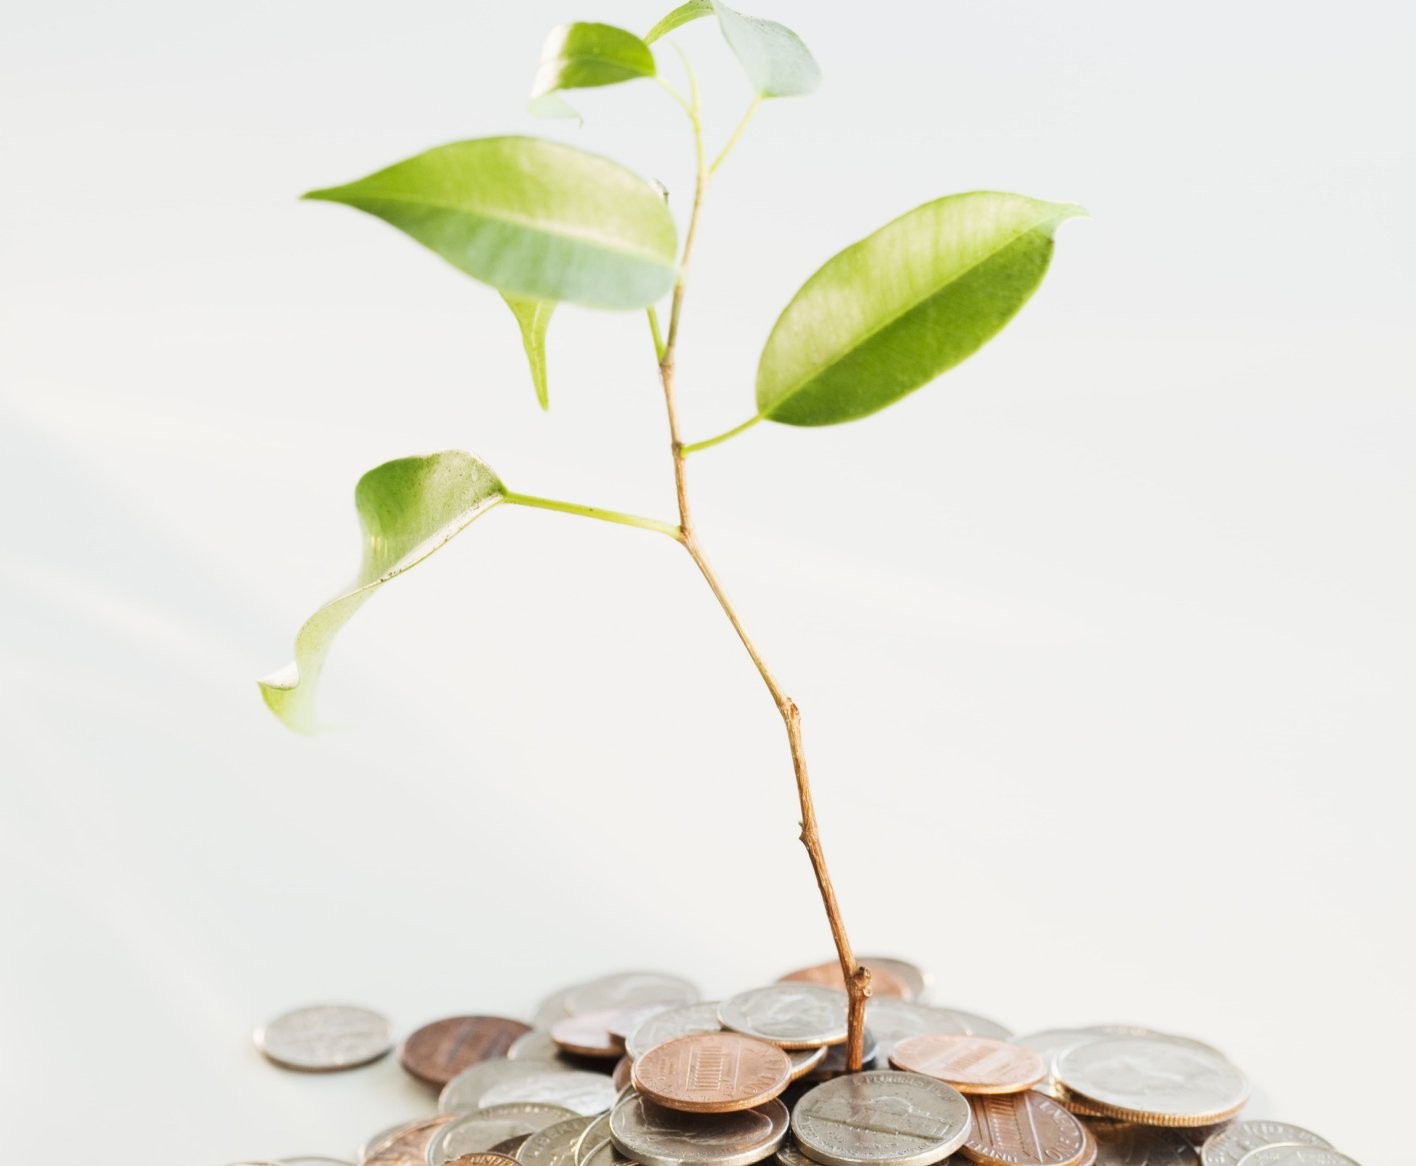 plant sprouting out of coin pile